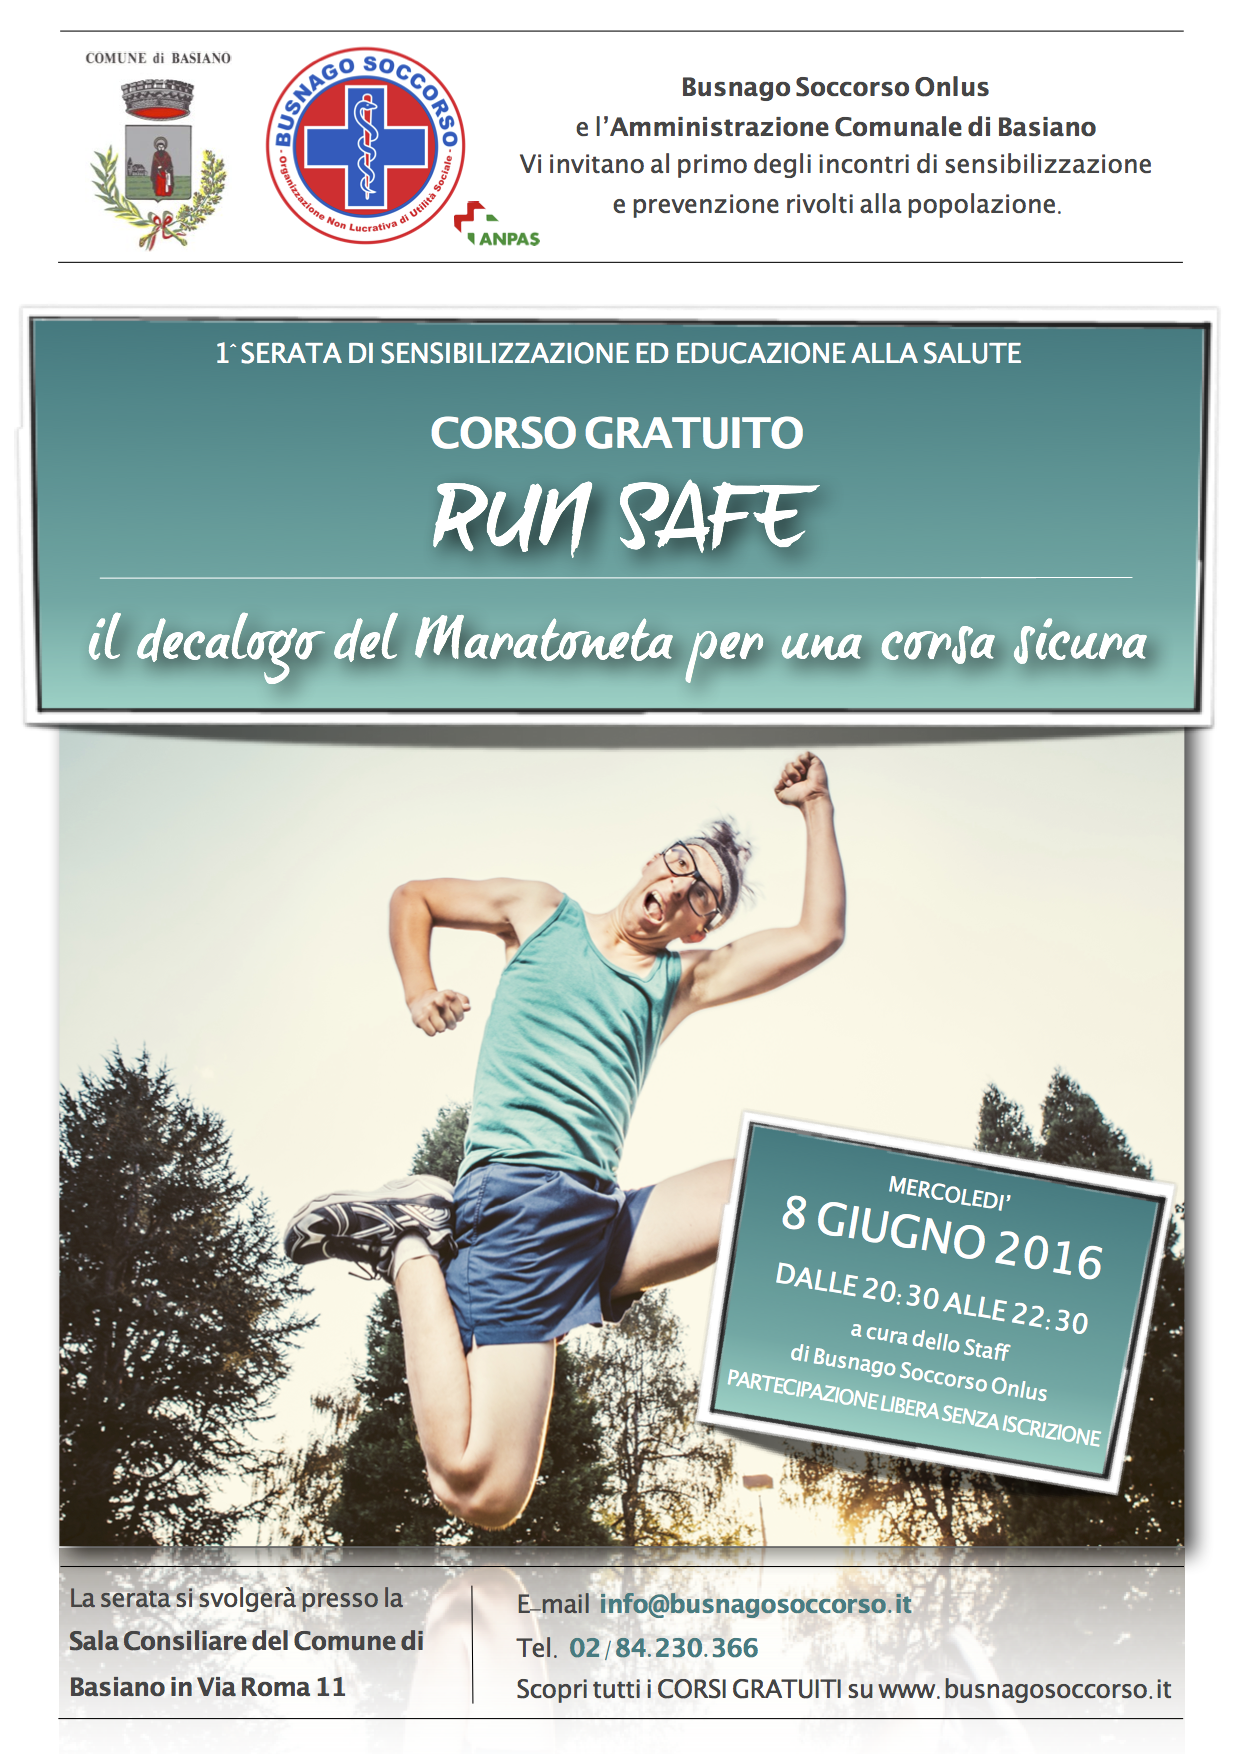 run_safe_def_2016_busnagosoccorso